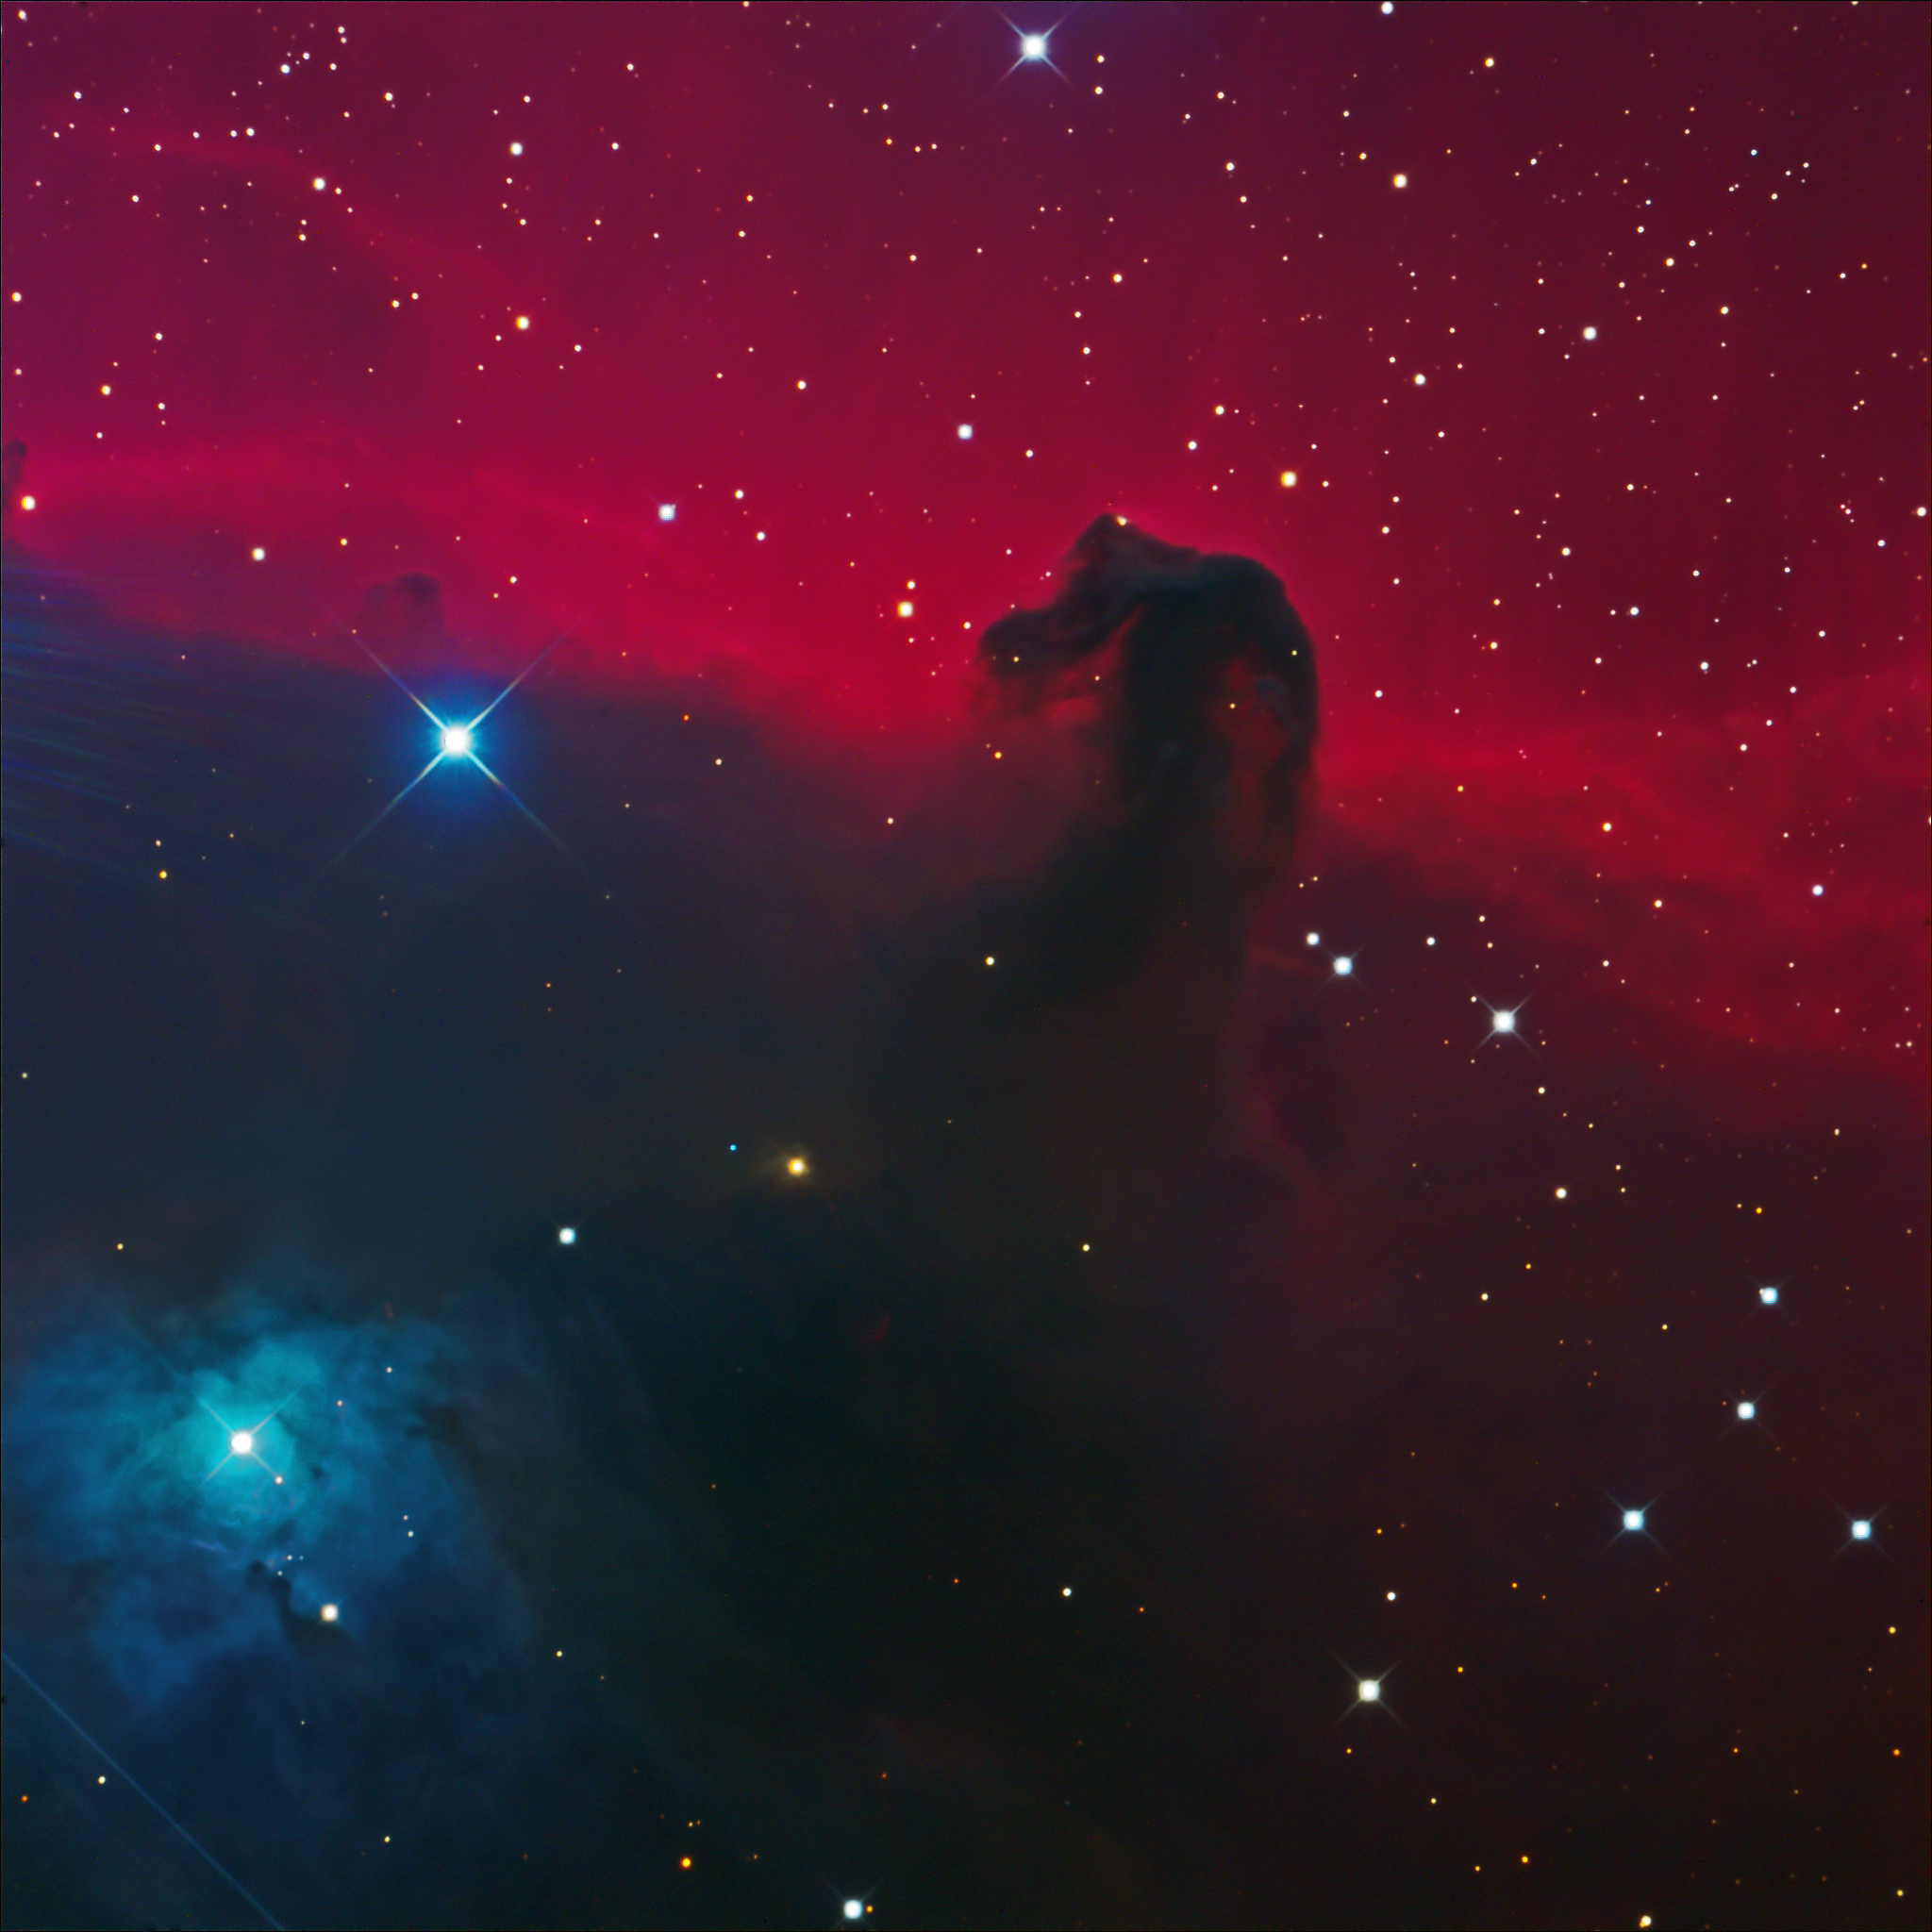 horsehead nebula pictures - HD2048×2048